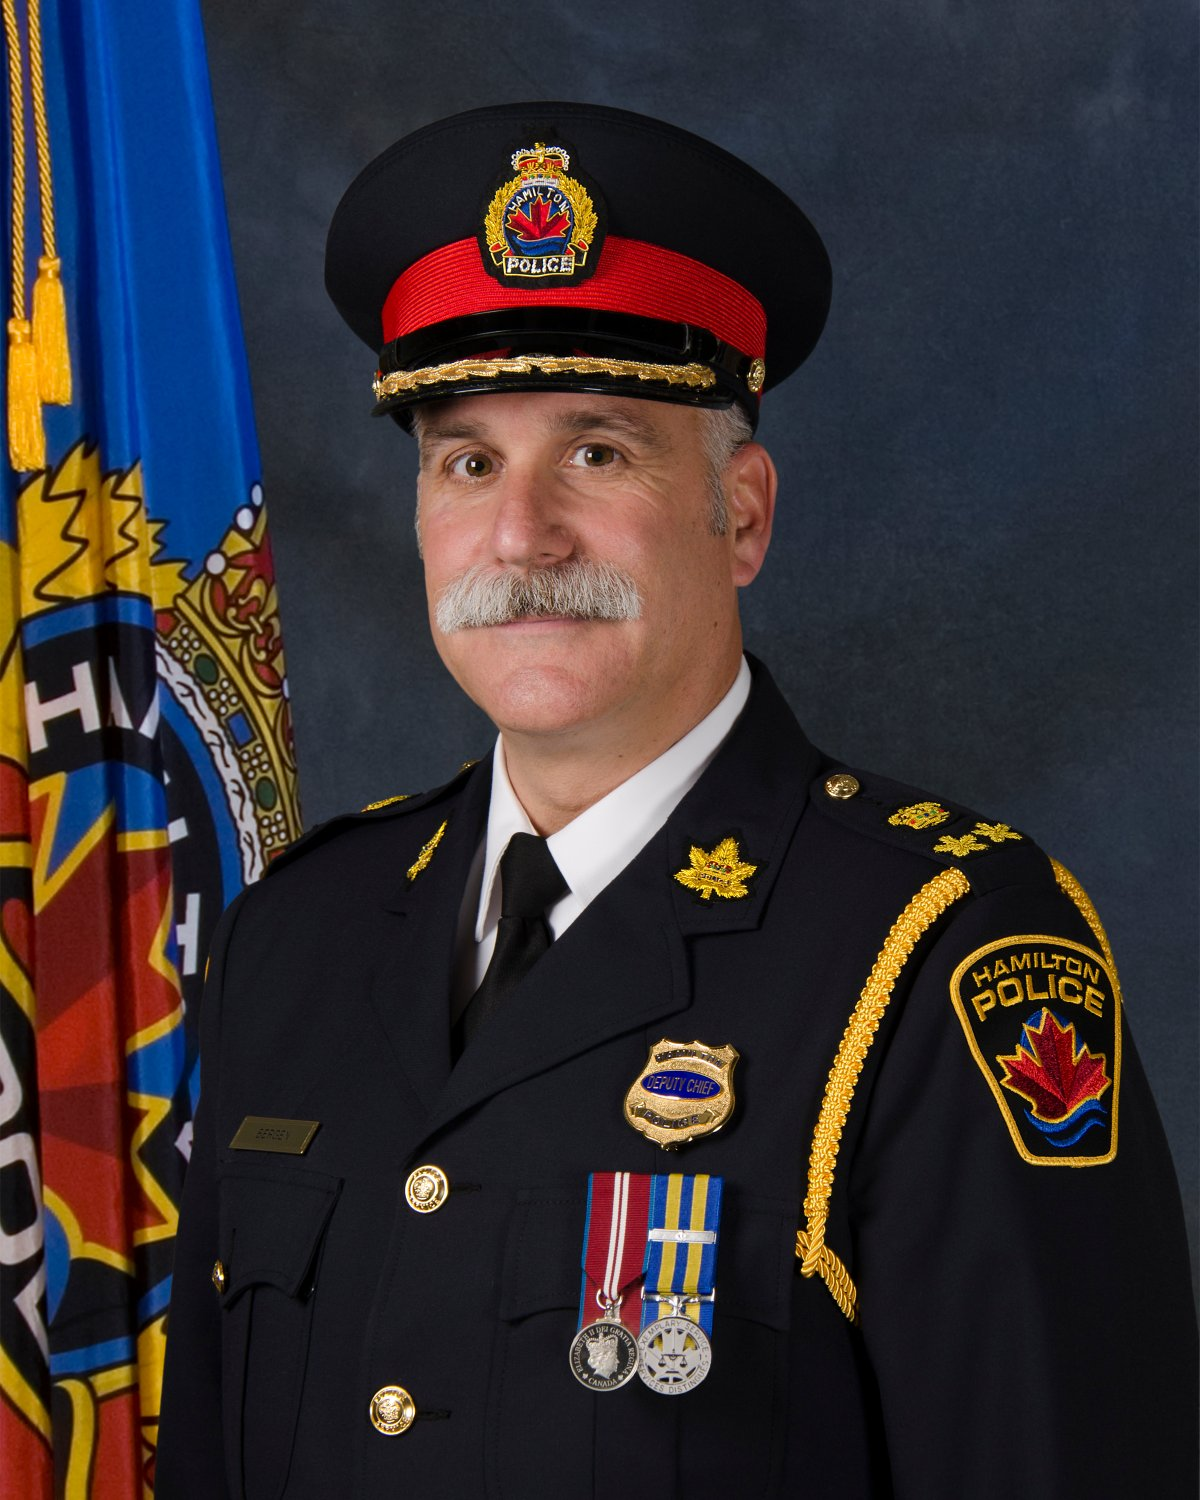 Frank Bergen, deputy chief since 2018, has been named Hamilton's 36th police chief.